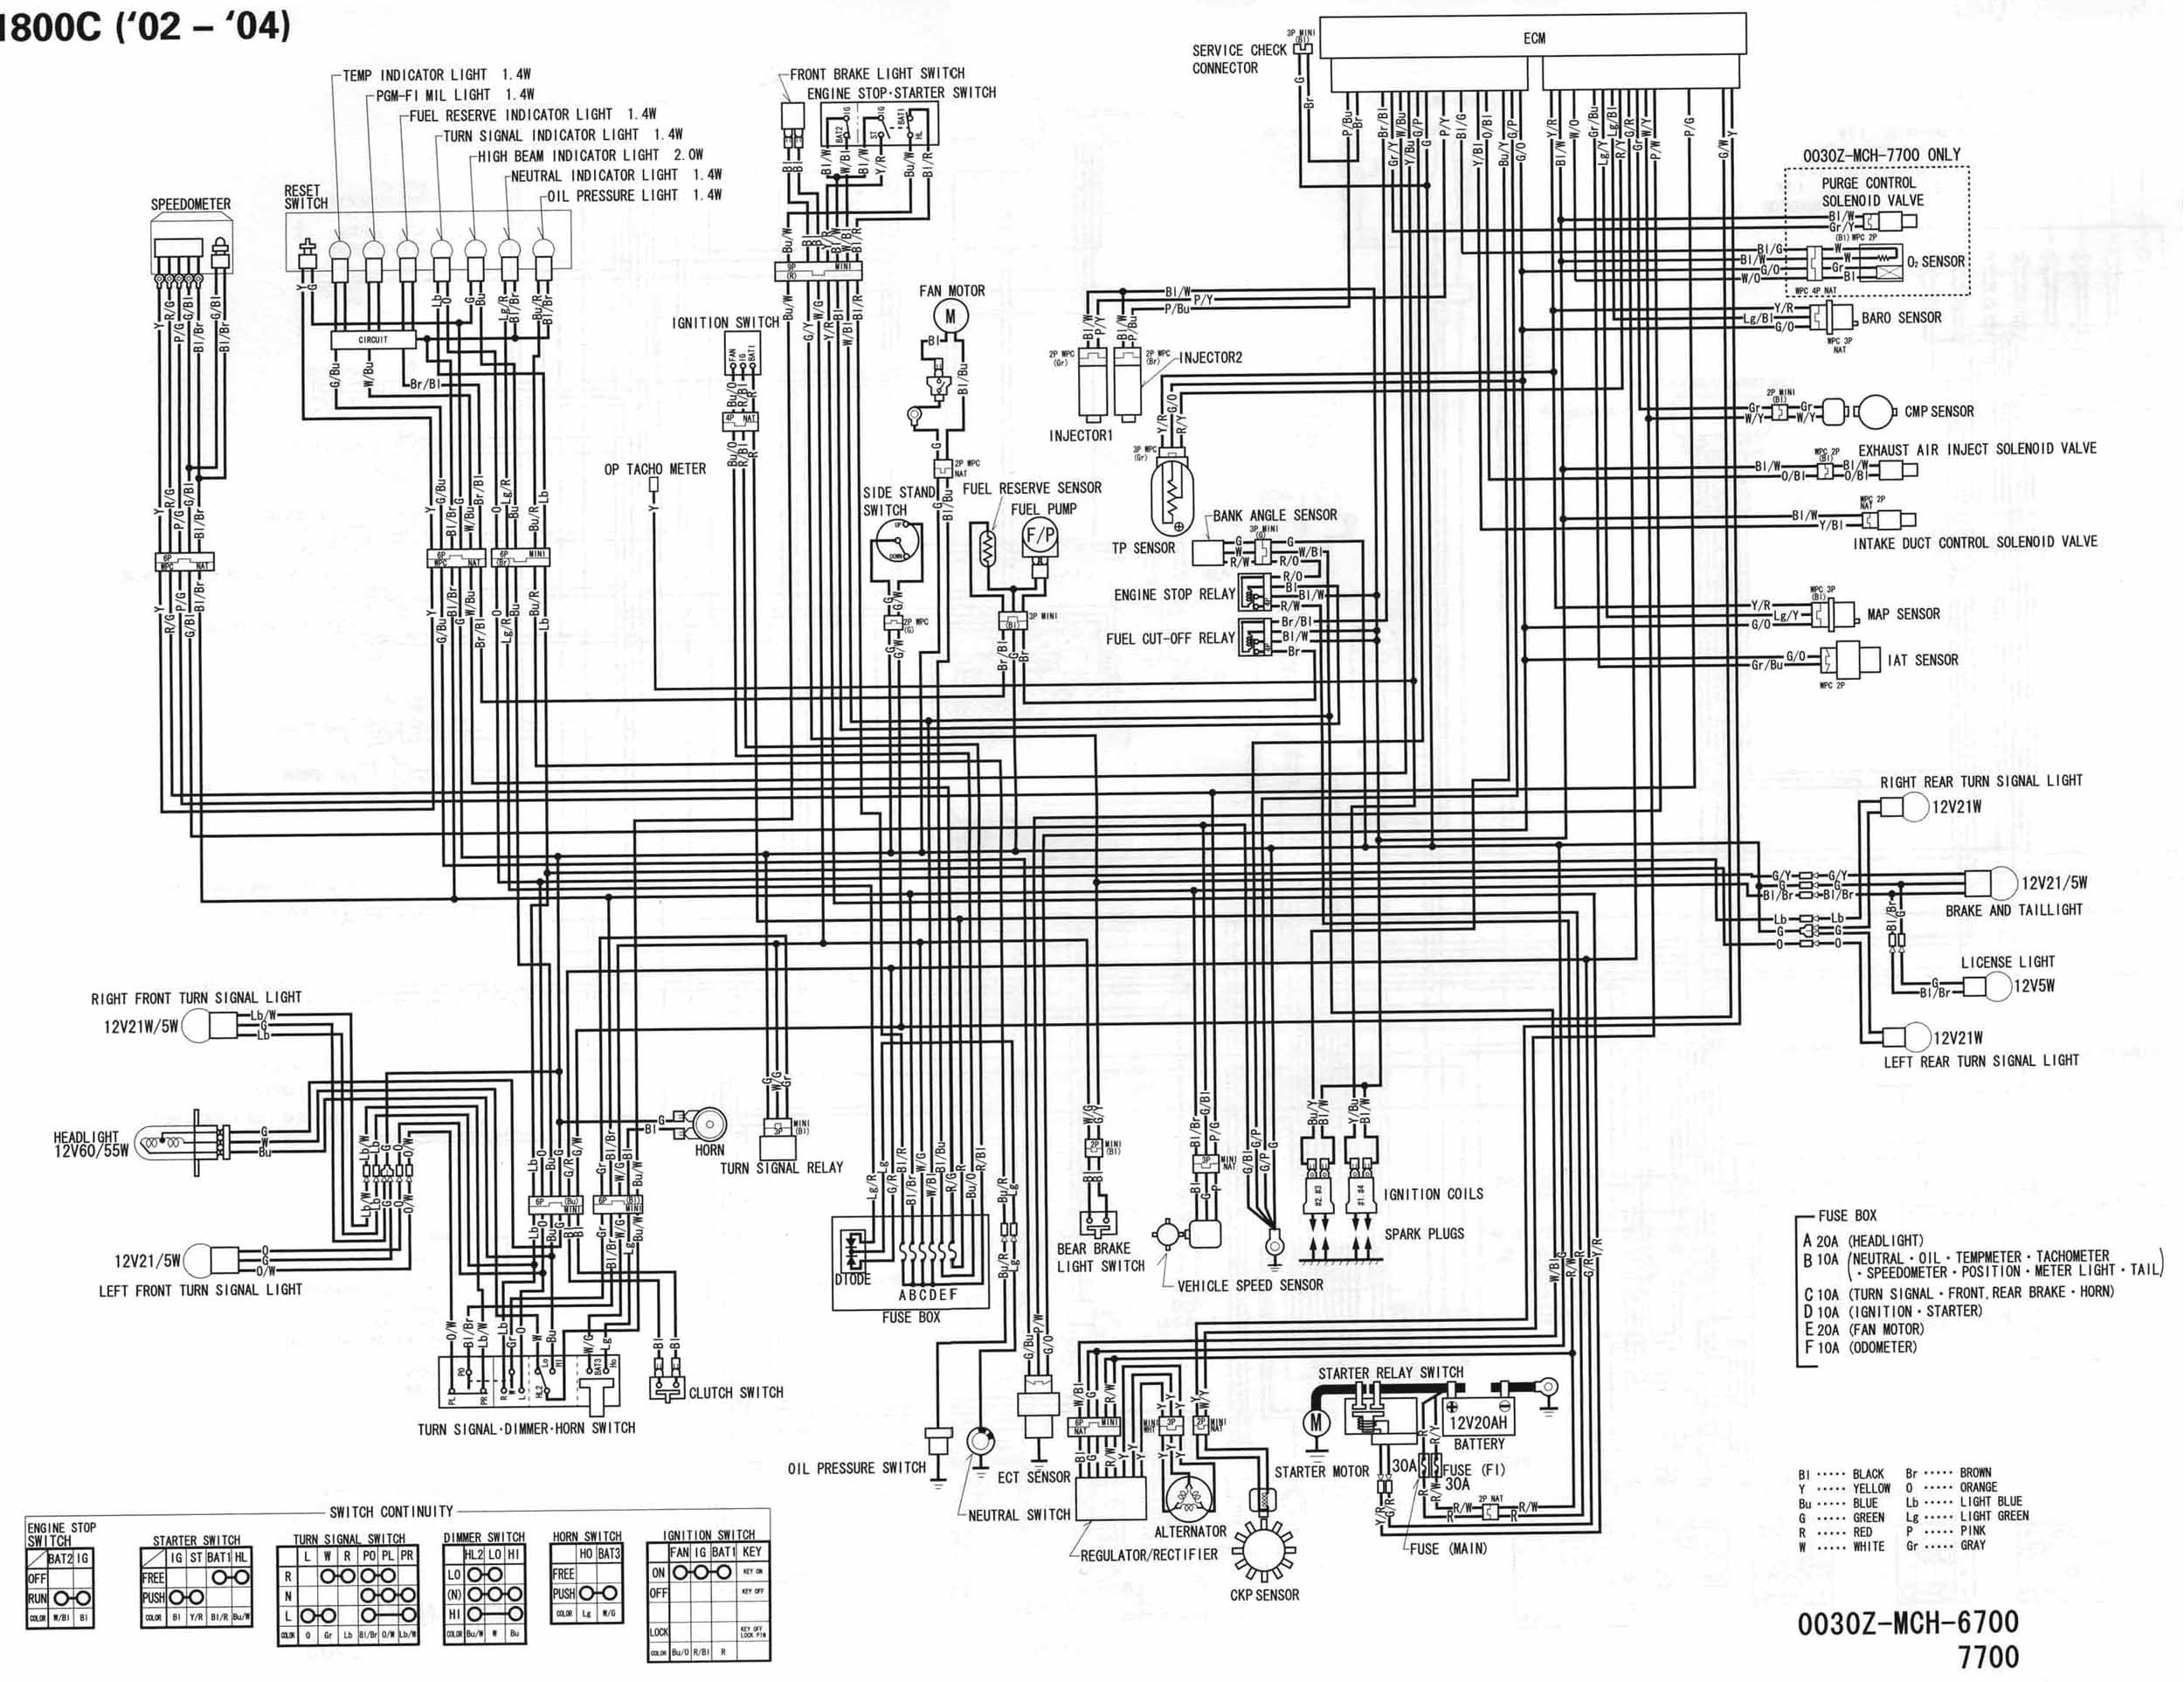 2003 honda vtx 1300 headlight wiring diagram lewis dot for k 1800 ke get free image about